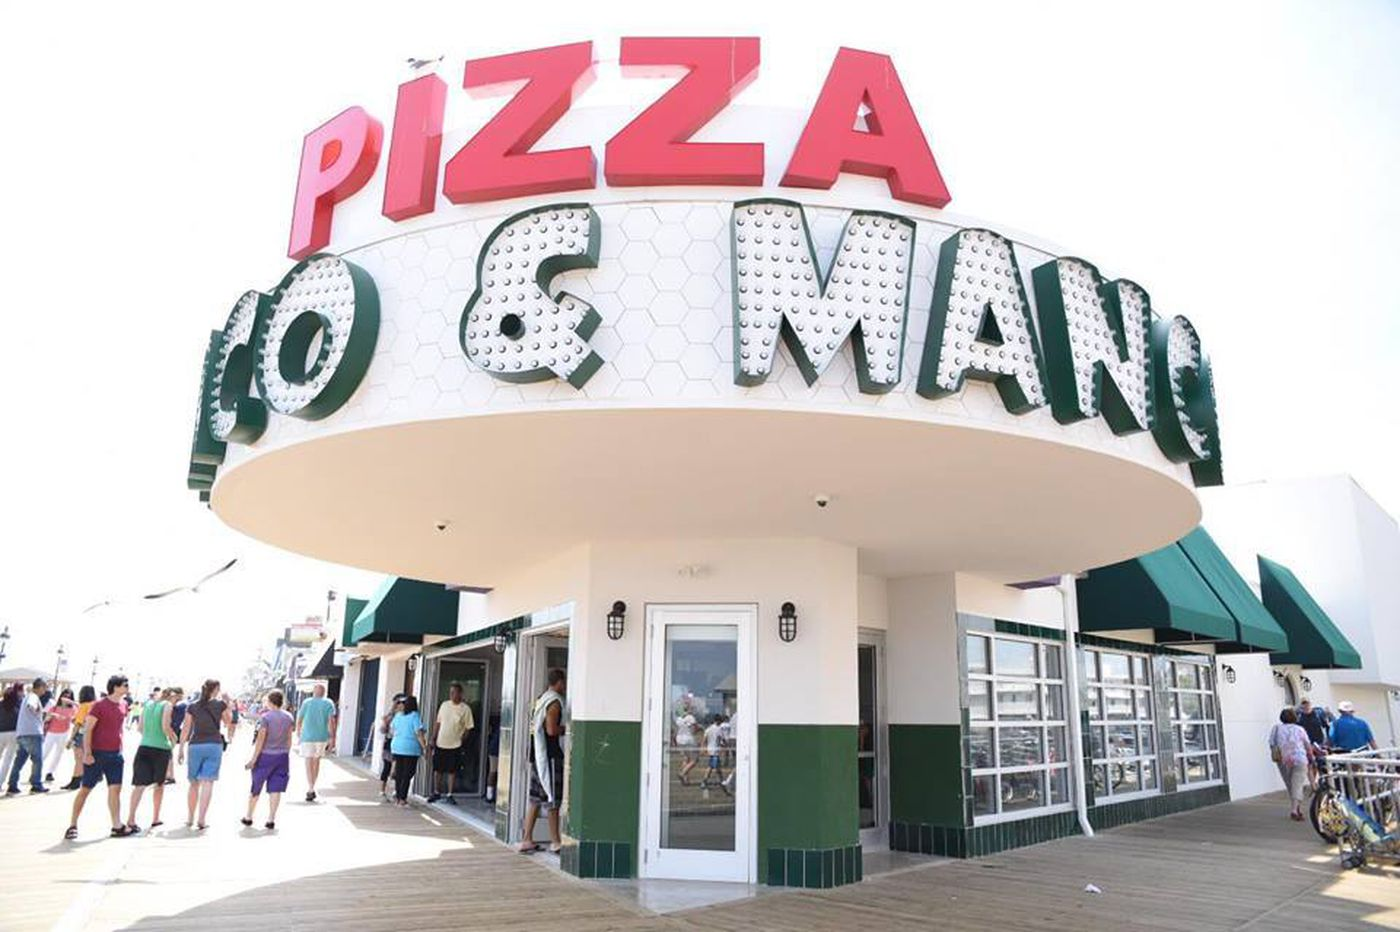 Al Pacino stops for a pie at Manco and Manco Pizza down the Jersey Shore